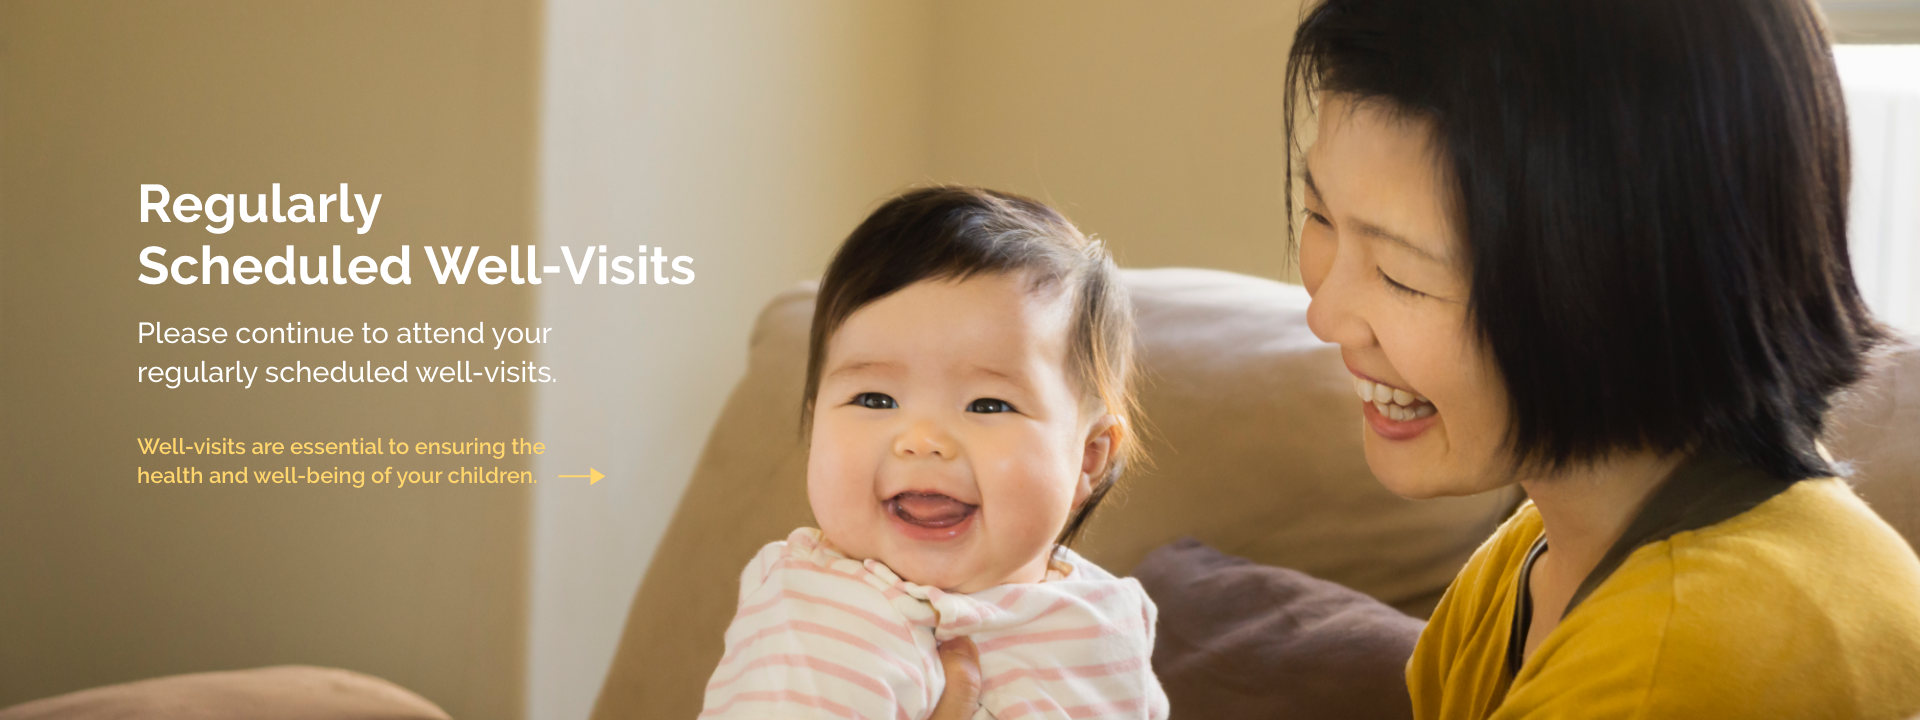 well-visits are essential to ensuring the health and well-being of your children